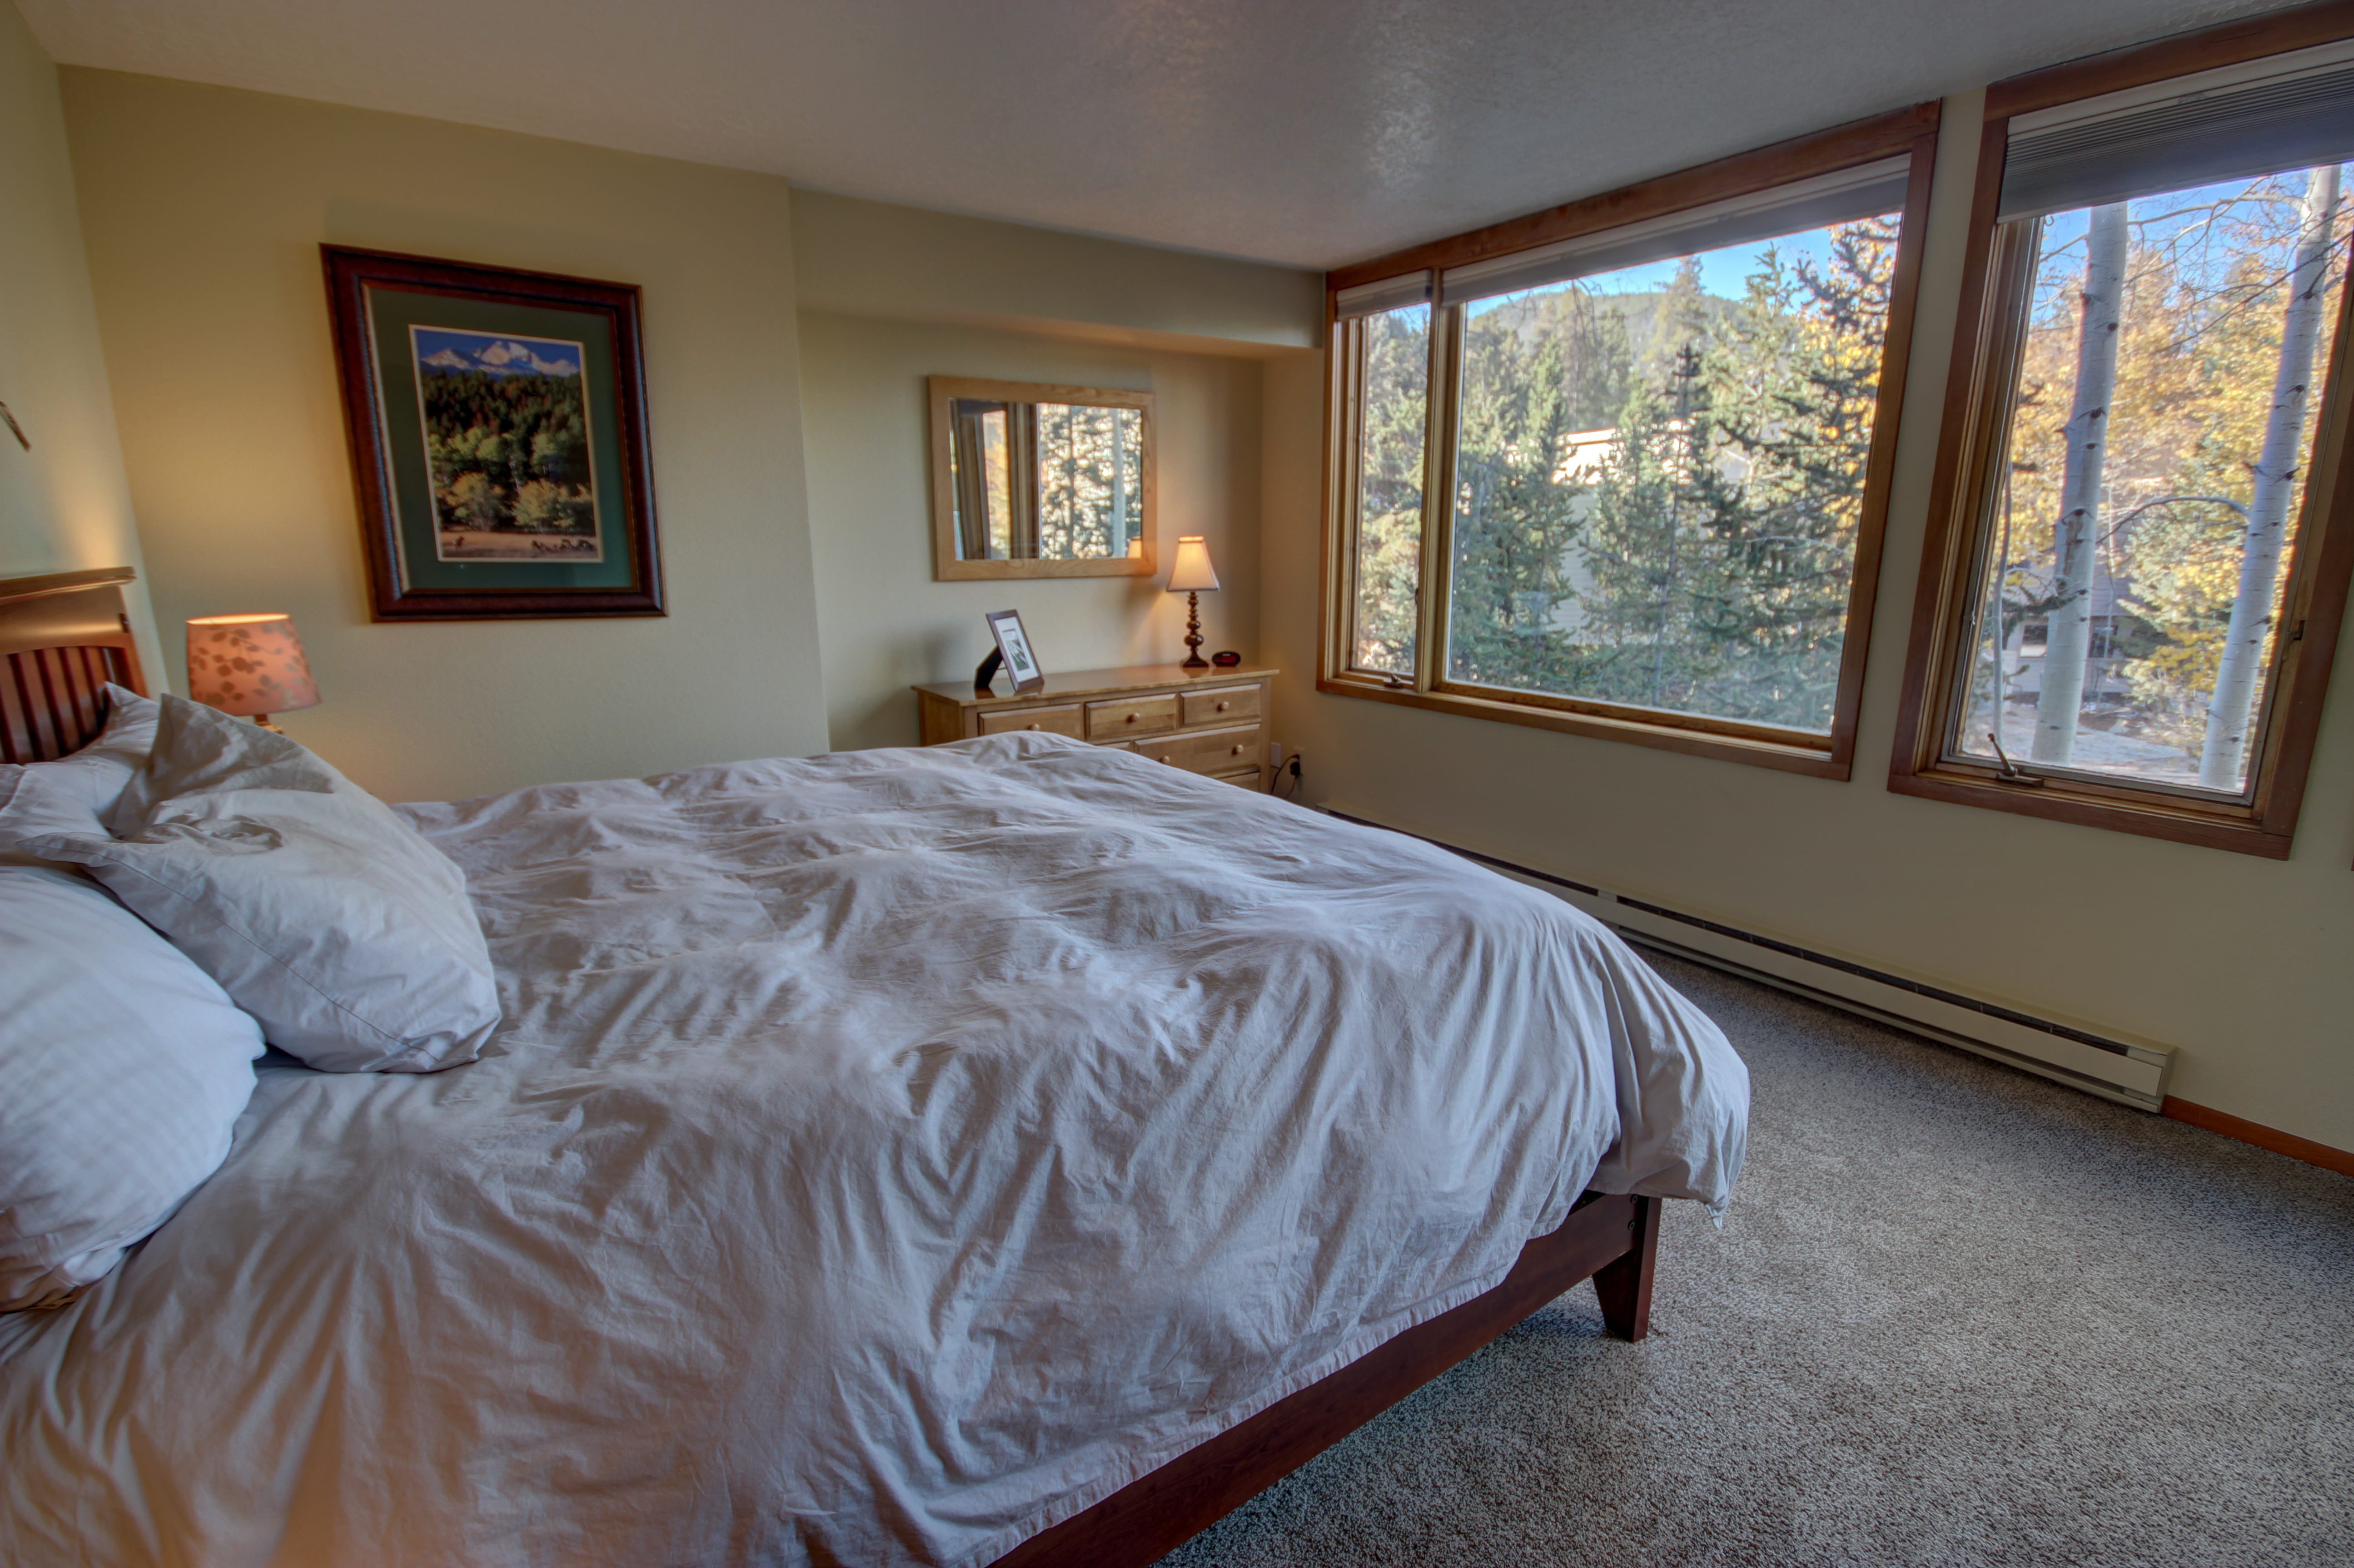 Bedroom with awesome view to enjoy as you relax after a long day in the sun or snow